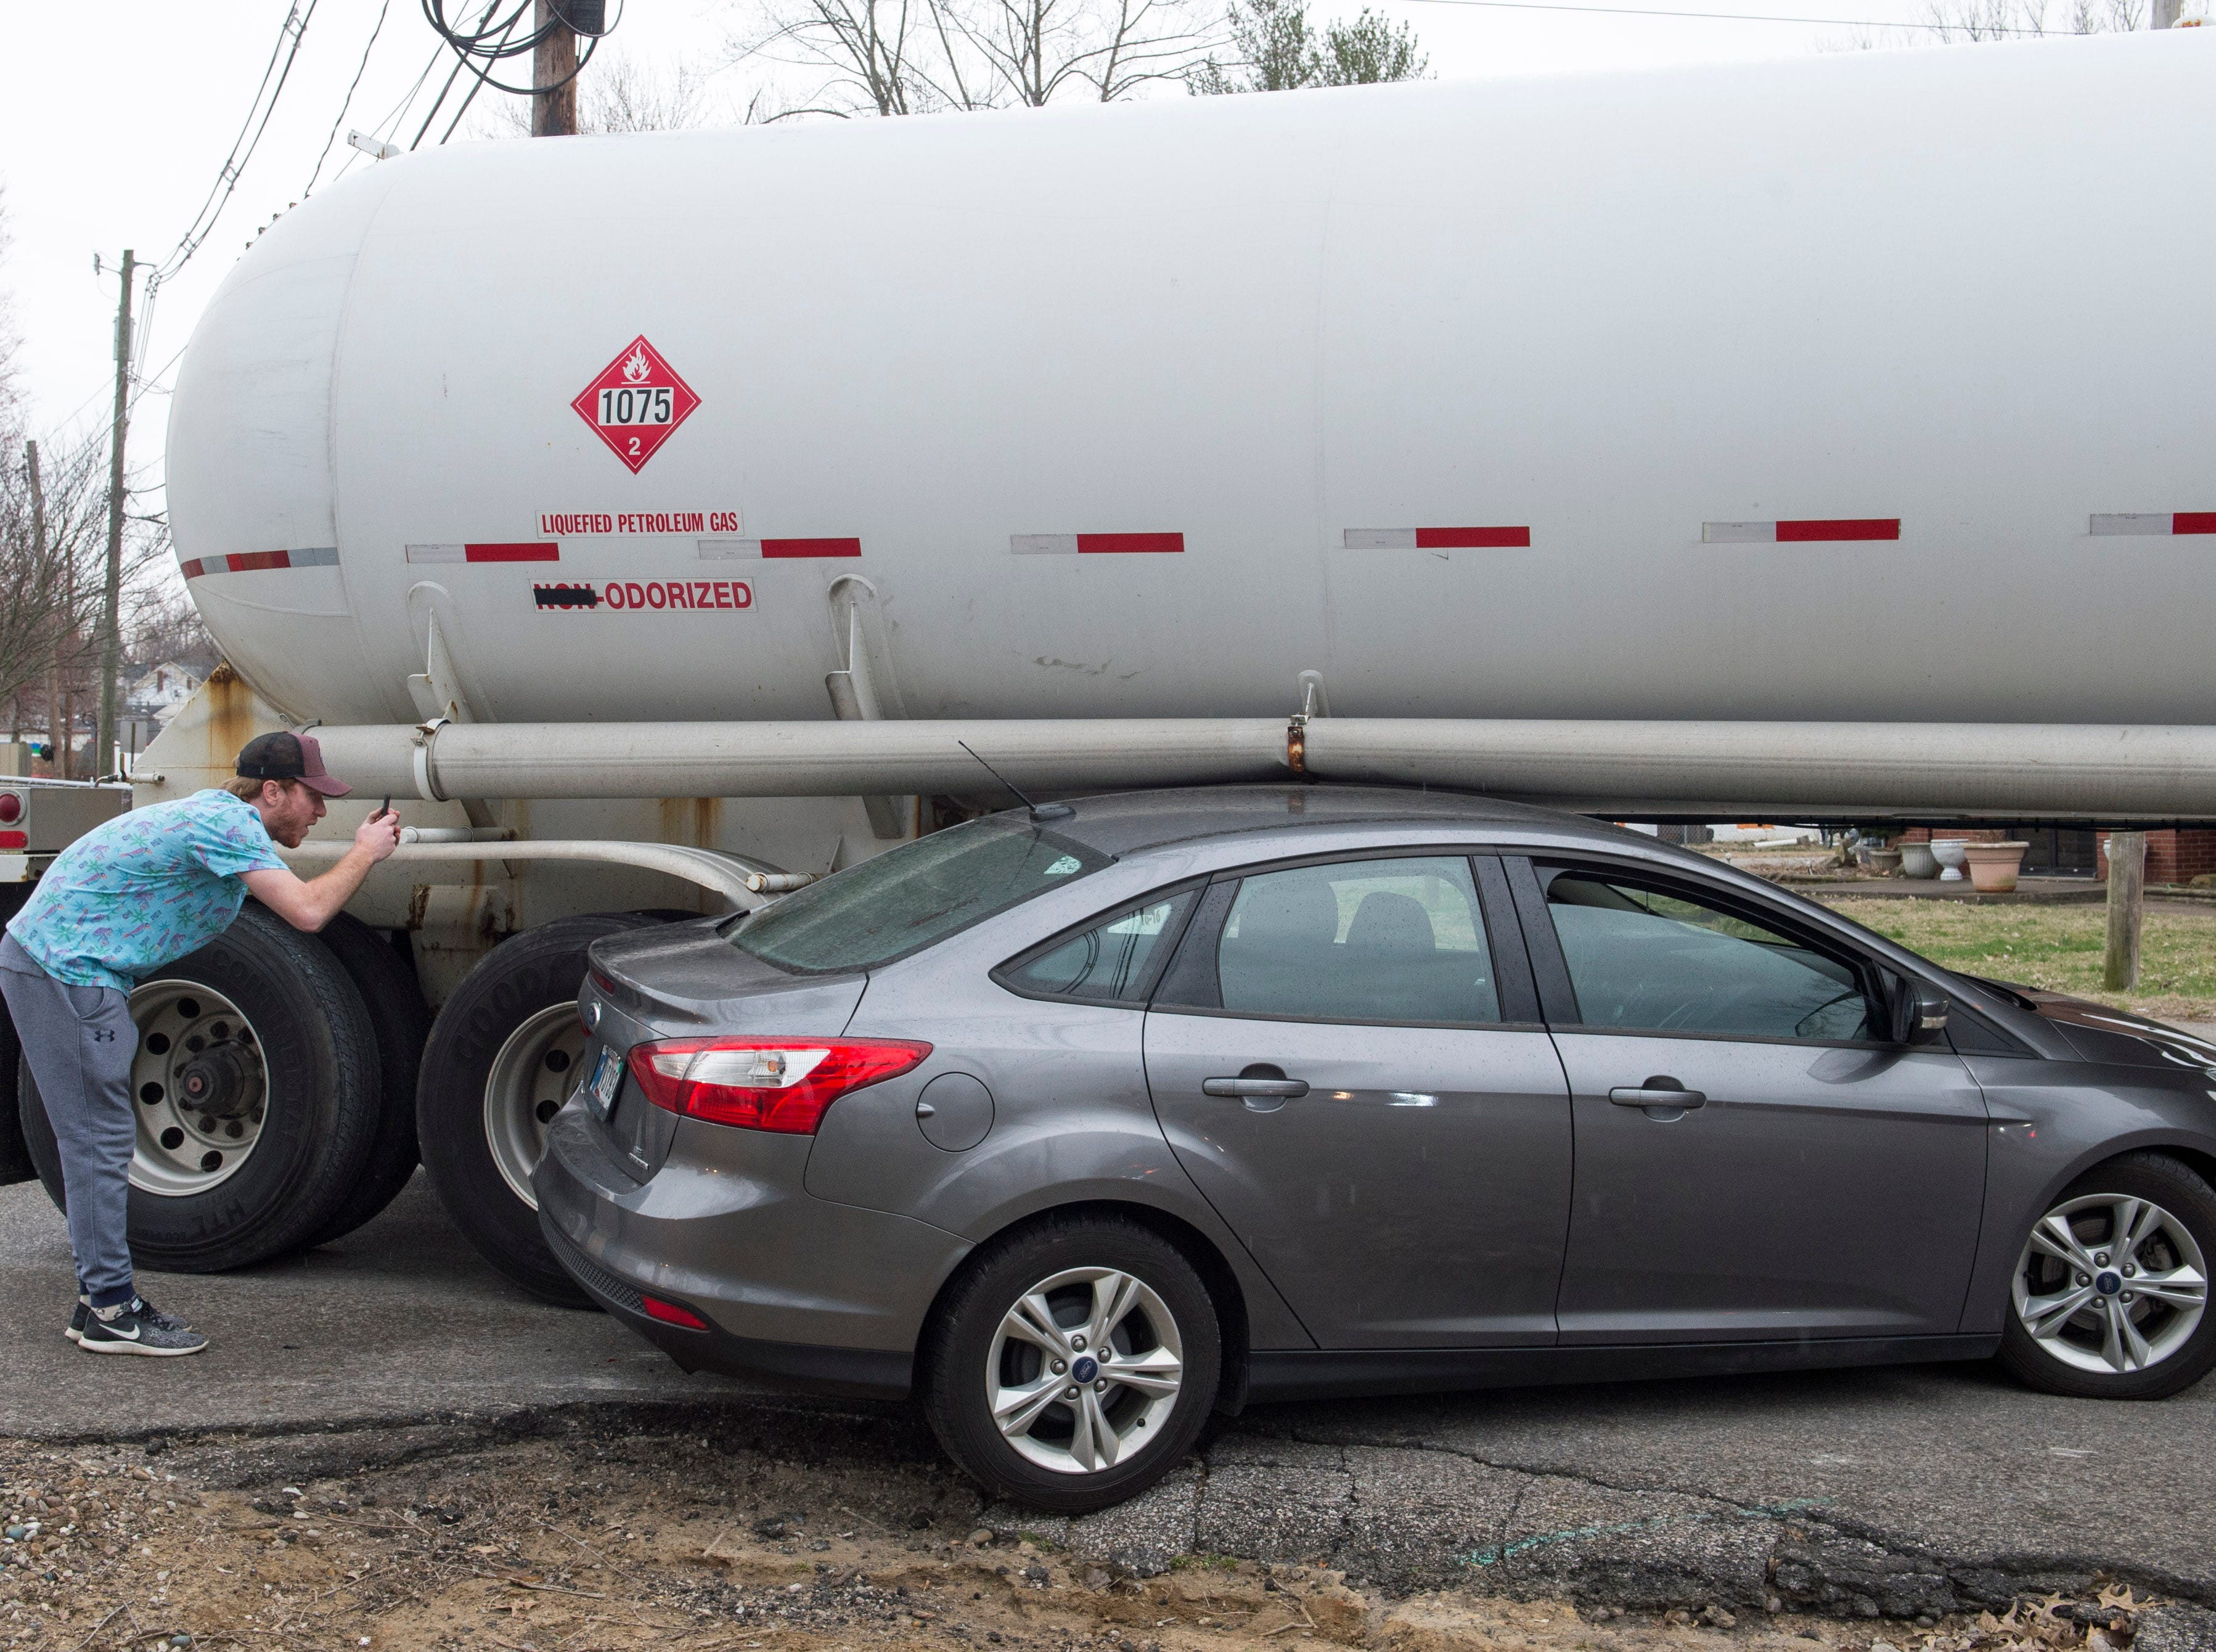 The husband of the driver involved in an accident with tanker truck at the intersection of Woods Ave. and Houge Rd. on Evansville's West Side takes photos of the damage Wednesday, March 20, 2019. The truck was empty and no one was injured.